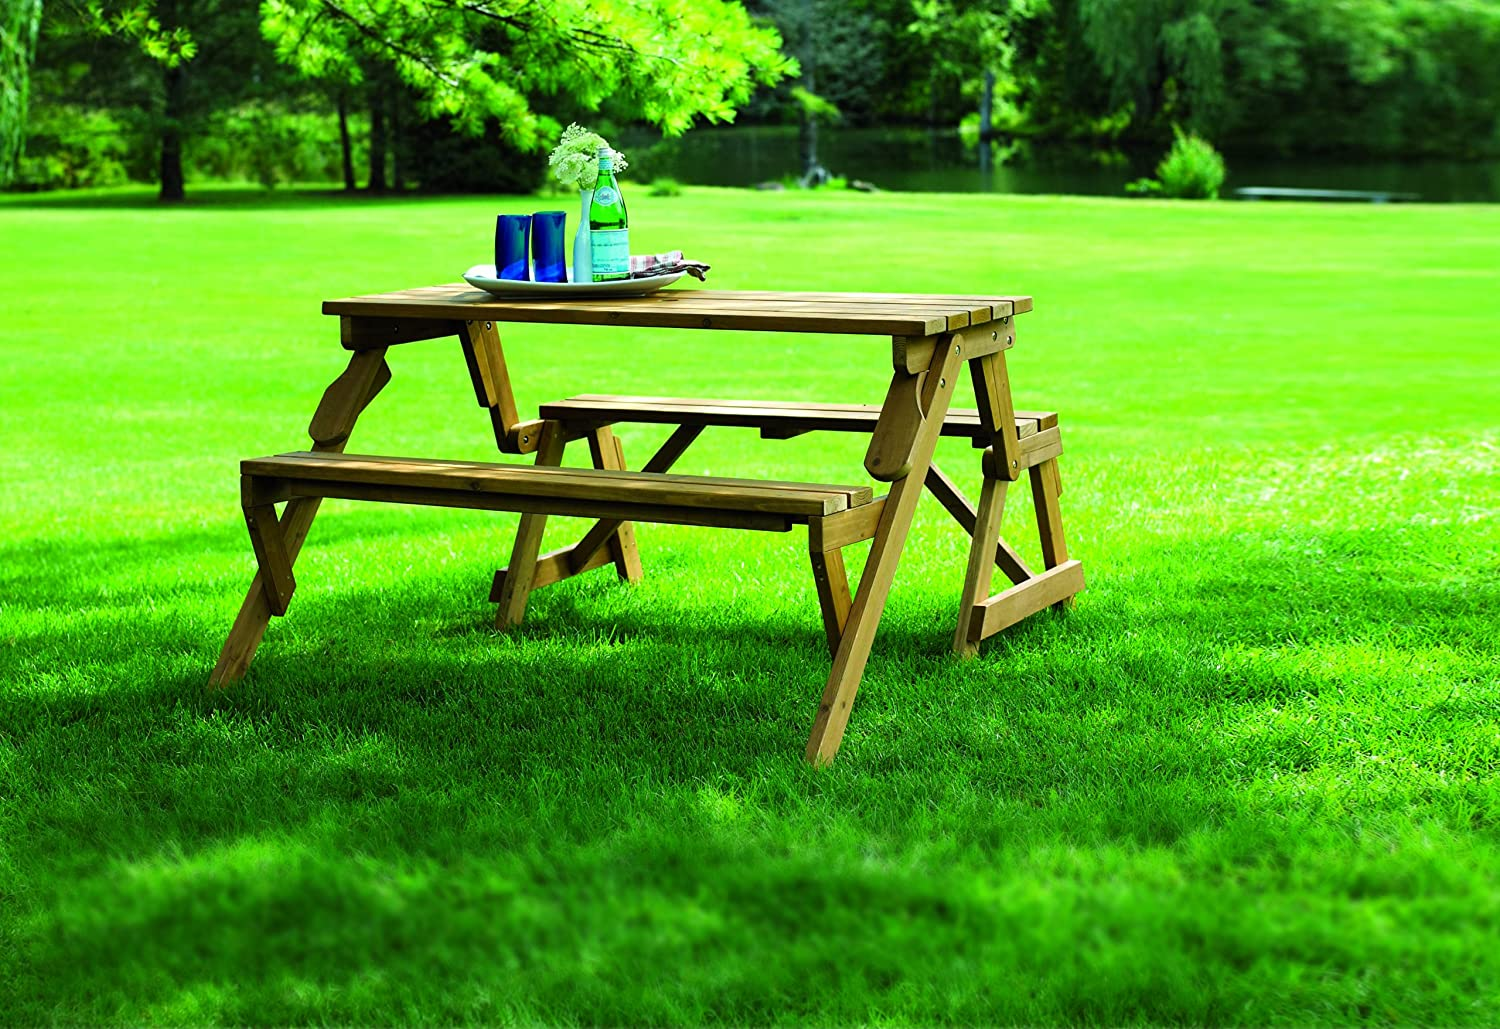 Amazon.com : Merry Garden Interchangeable Picnic Table And Garden Bench :  Patio, Lawn U0026 Garden